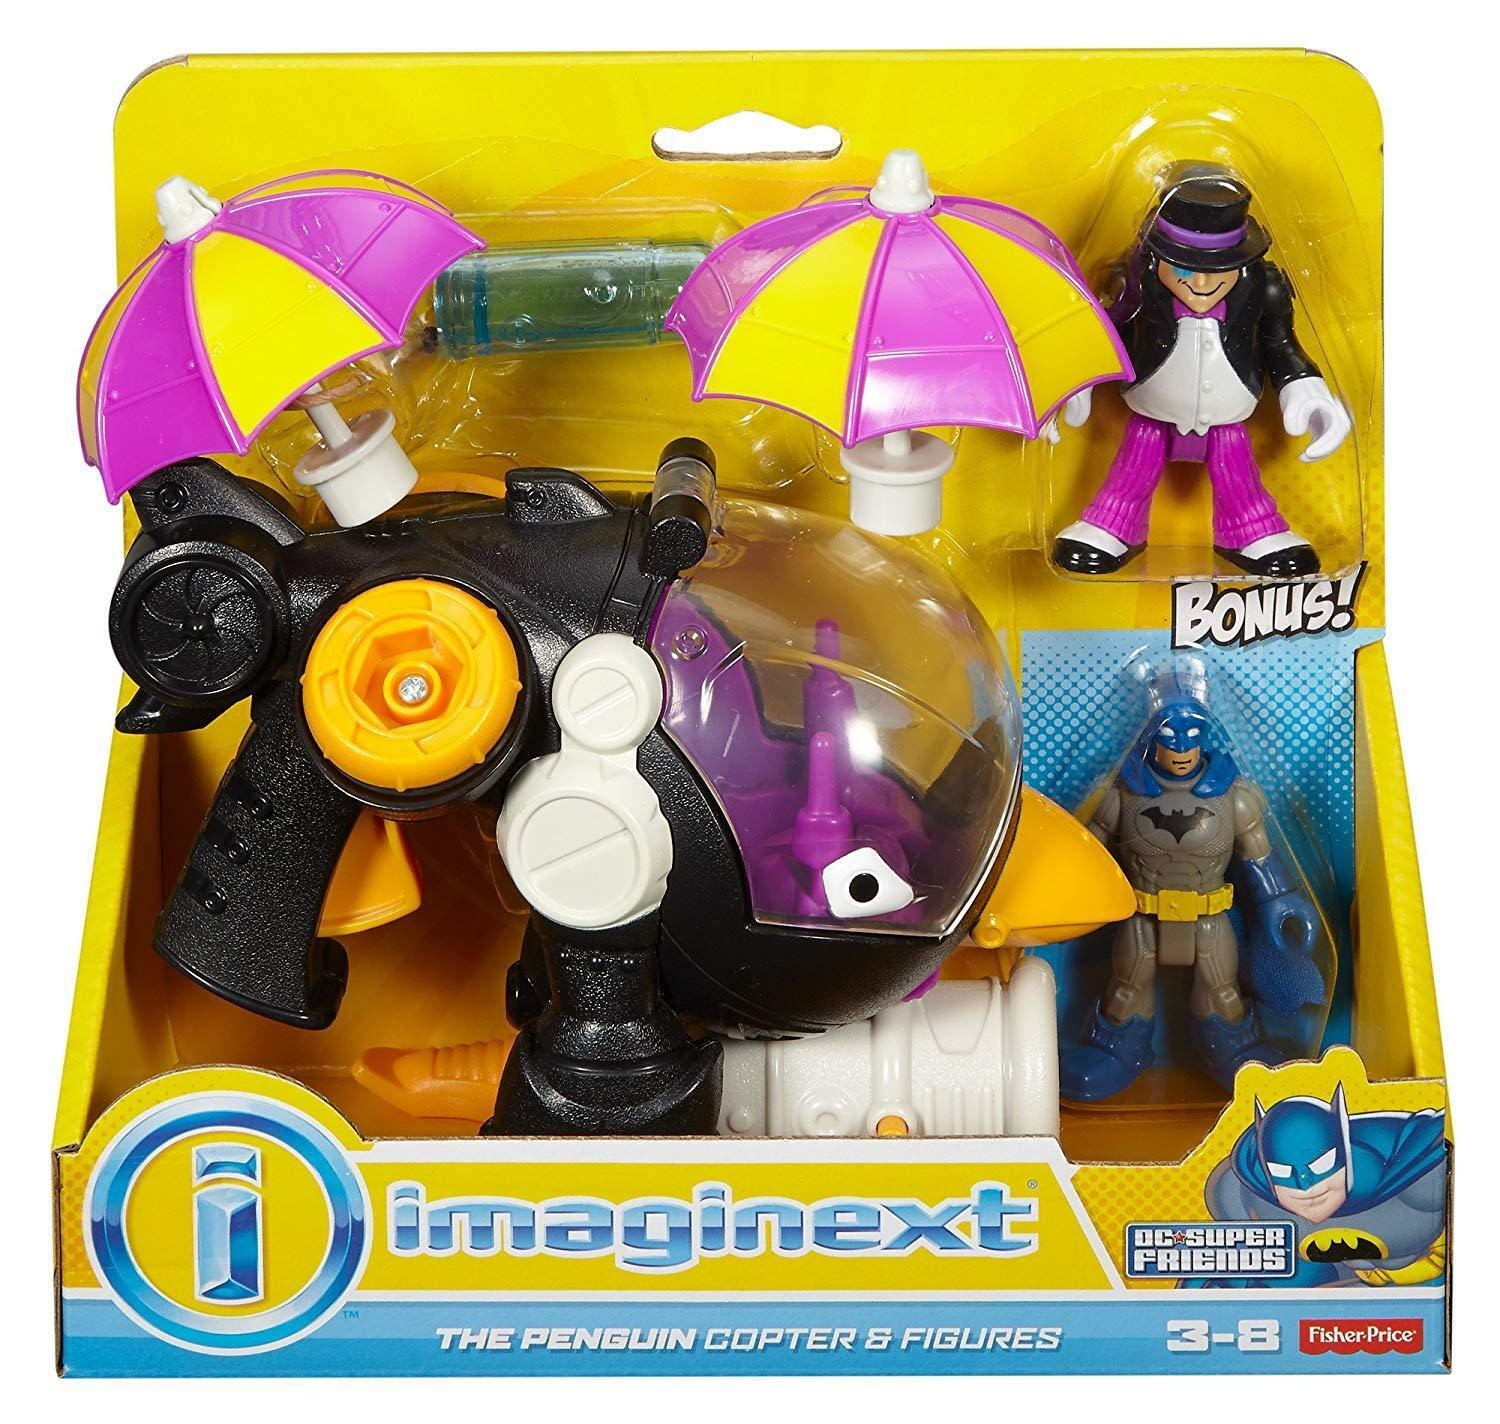 NIB Fisher Price Imaginext DC Super Friends The Penguin Copter and Batman Toy